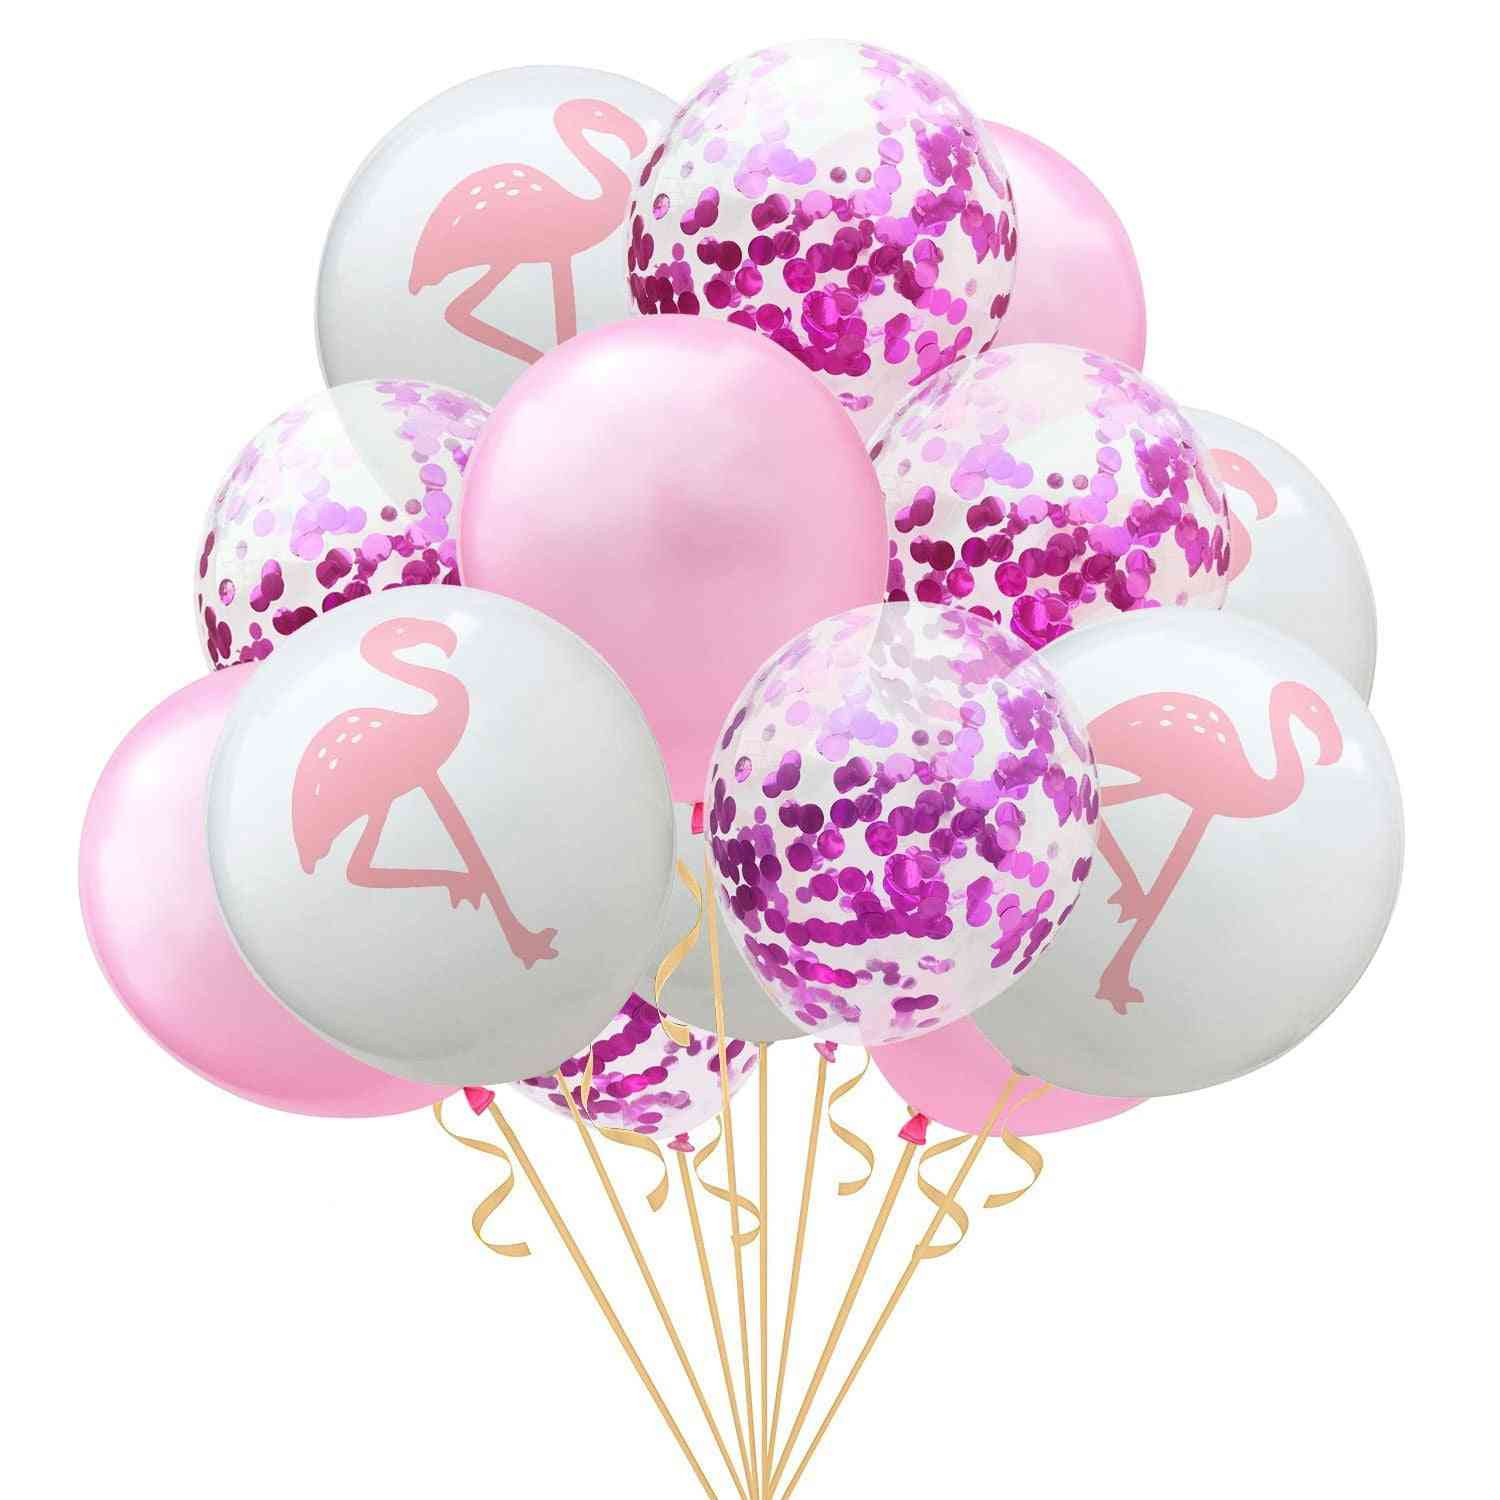 Inflatable Birthday Balloons - Decorated Confetti Party Flamingo, Pineapple And Leaf